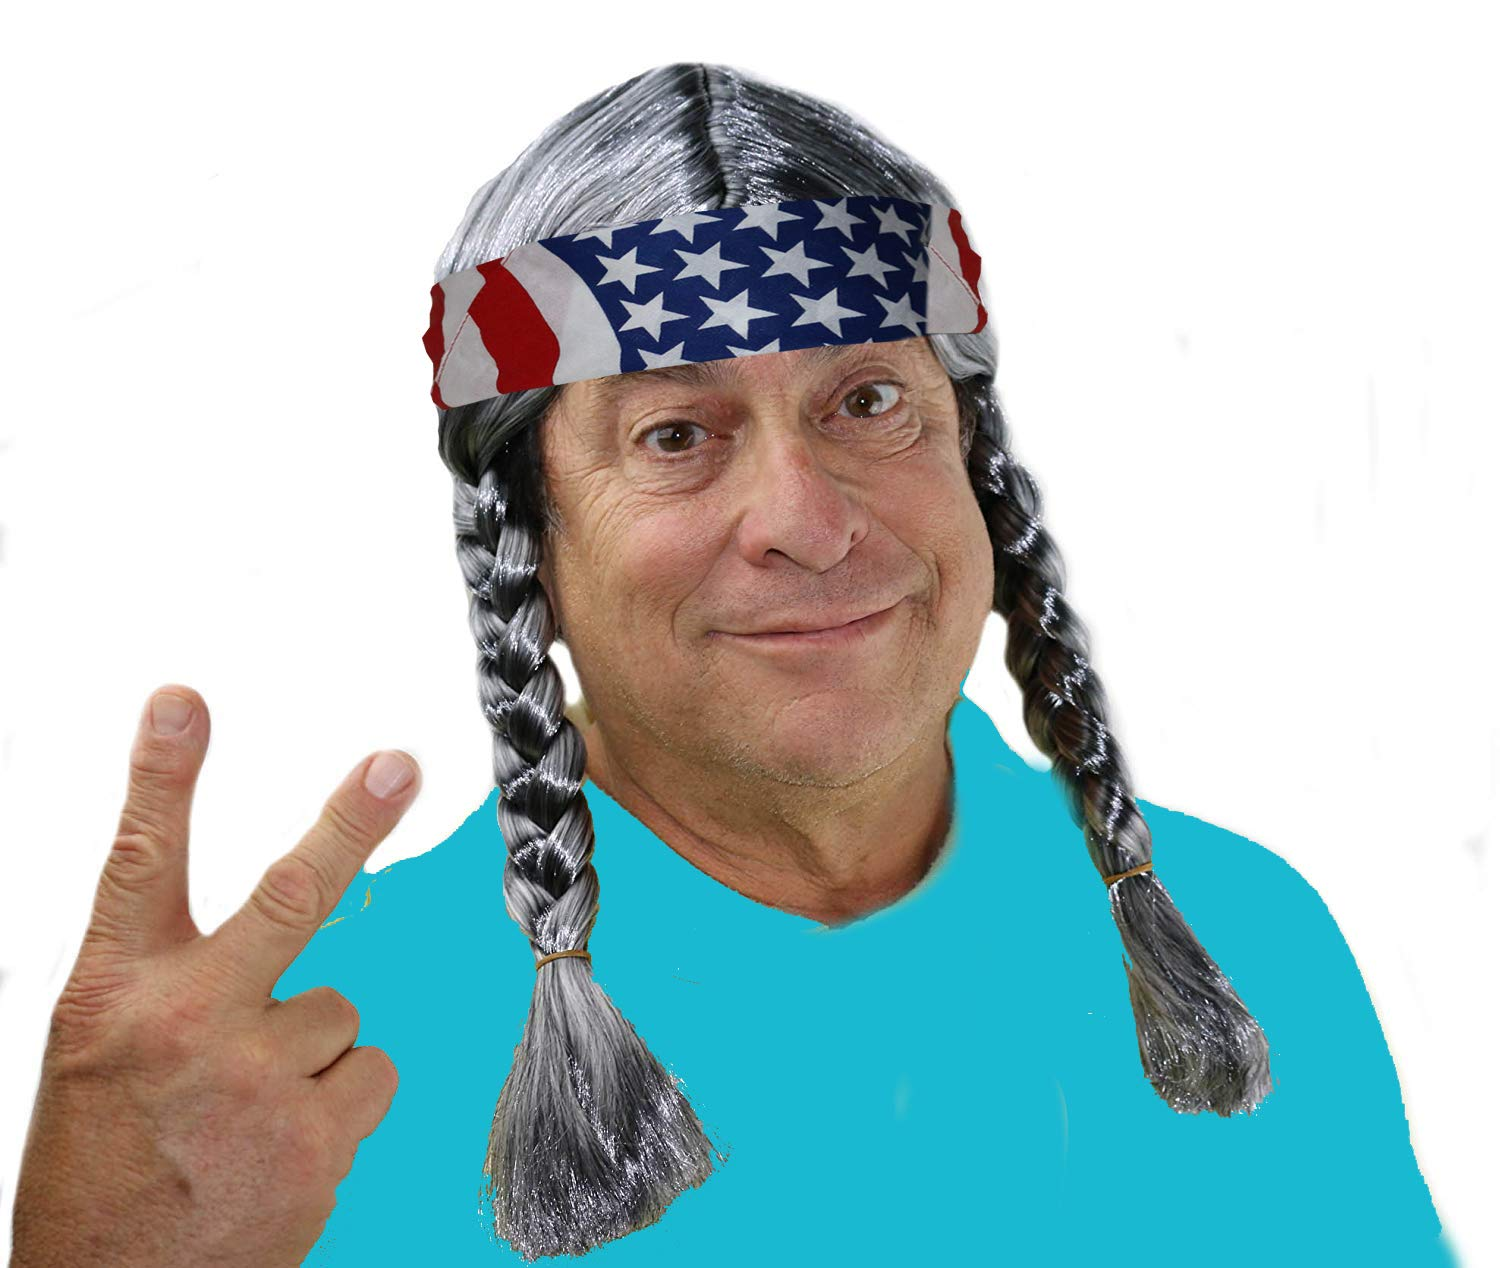 Braided Hippie Wig, Grey Willie Costume Wig, Hippie Wig Costume, Willie Costume Wig, Country Cowgirl Cowboy Willy Wig, Mens Hippy Wig with Braids and an American Flag Bandana